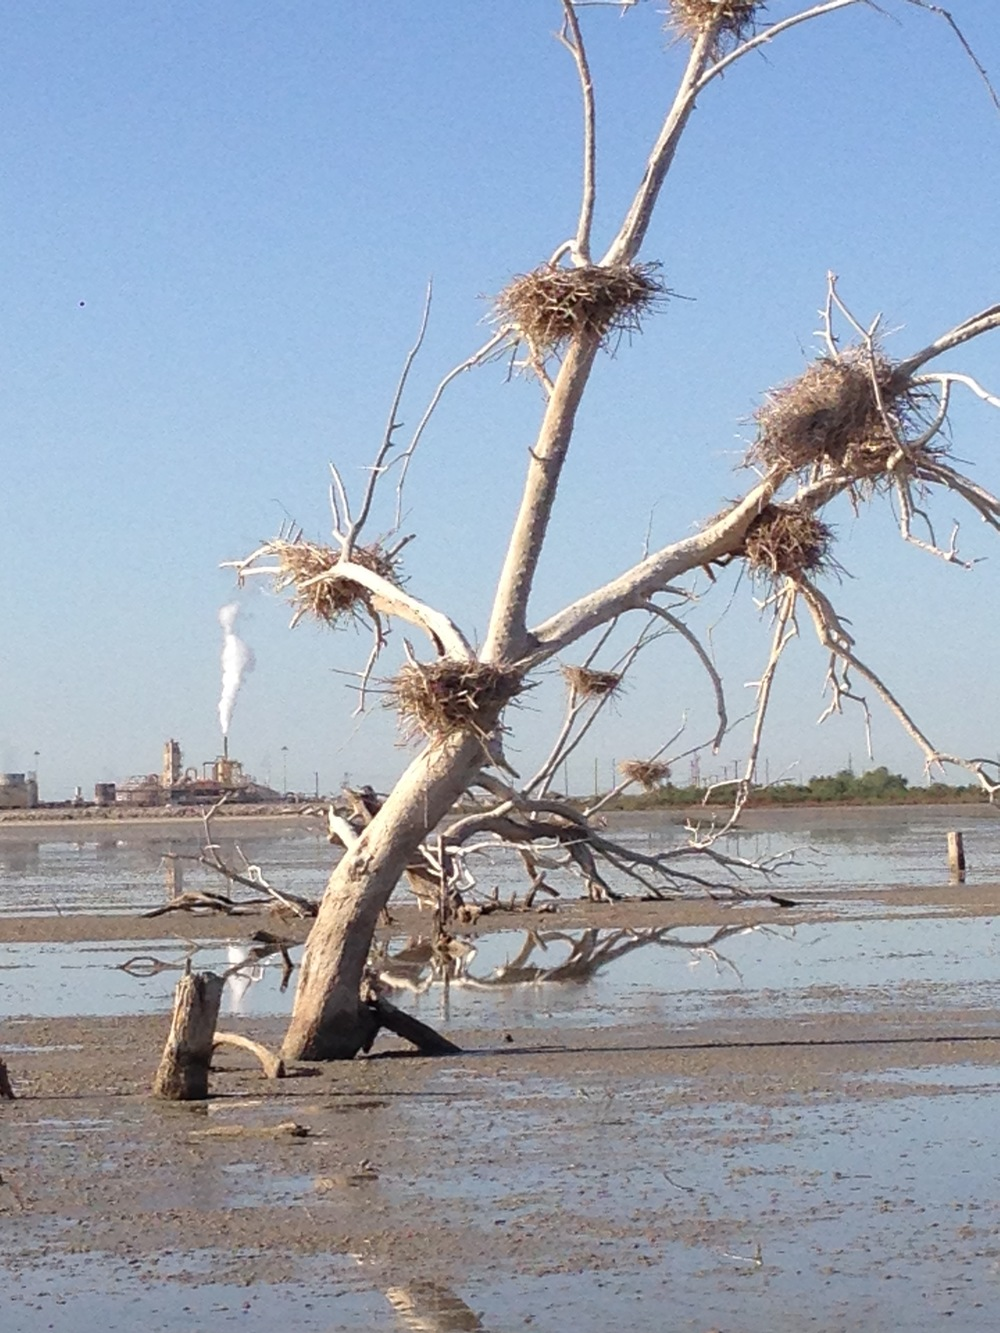 A dead tree with nests of lesser egrets or cormorants    : photo by Christopher Langley